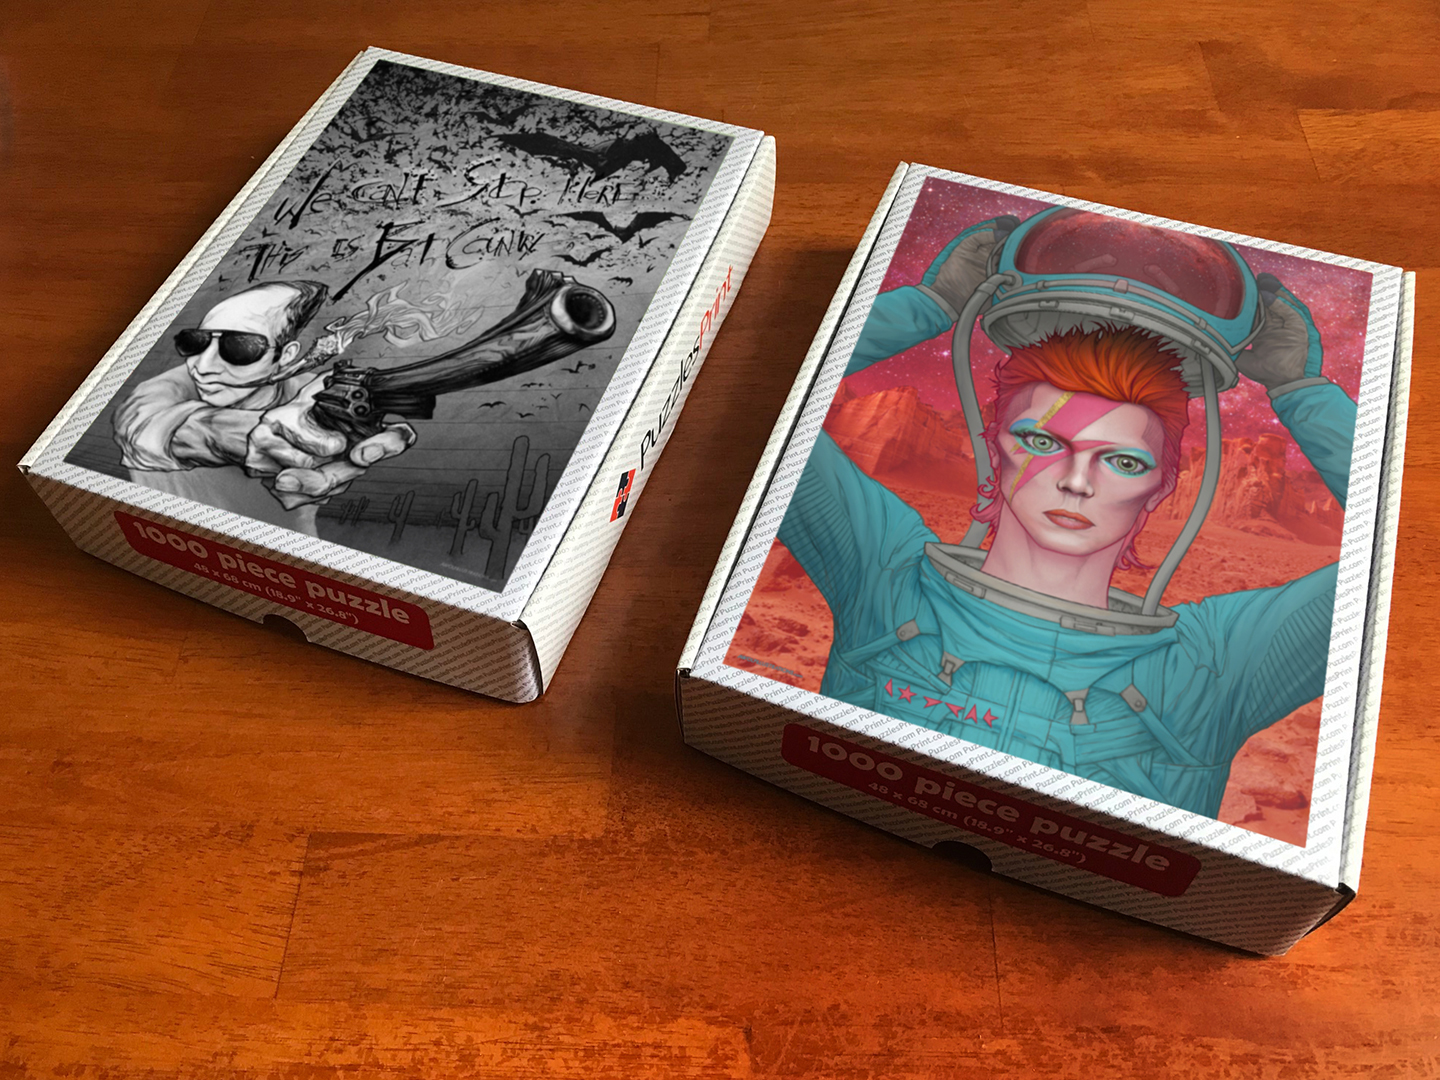 Pandemic Puzzles by Aaron Wolf: David Bowie and Hunter S. Thompson jigsaw puzzles available online and through Etsy